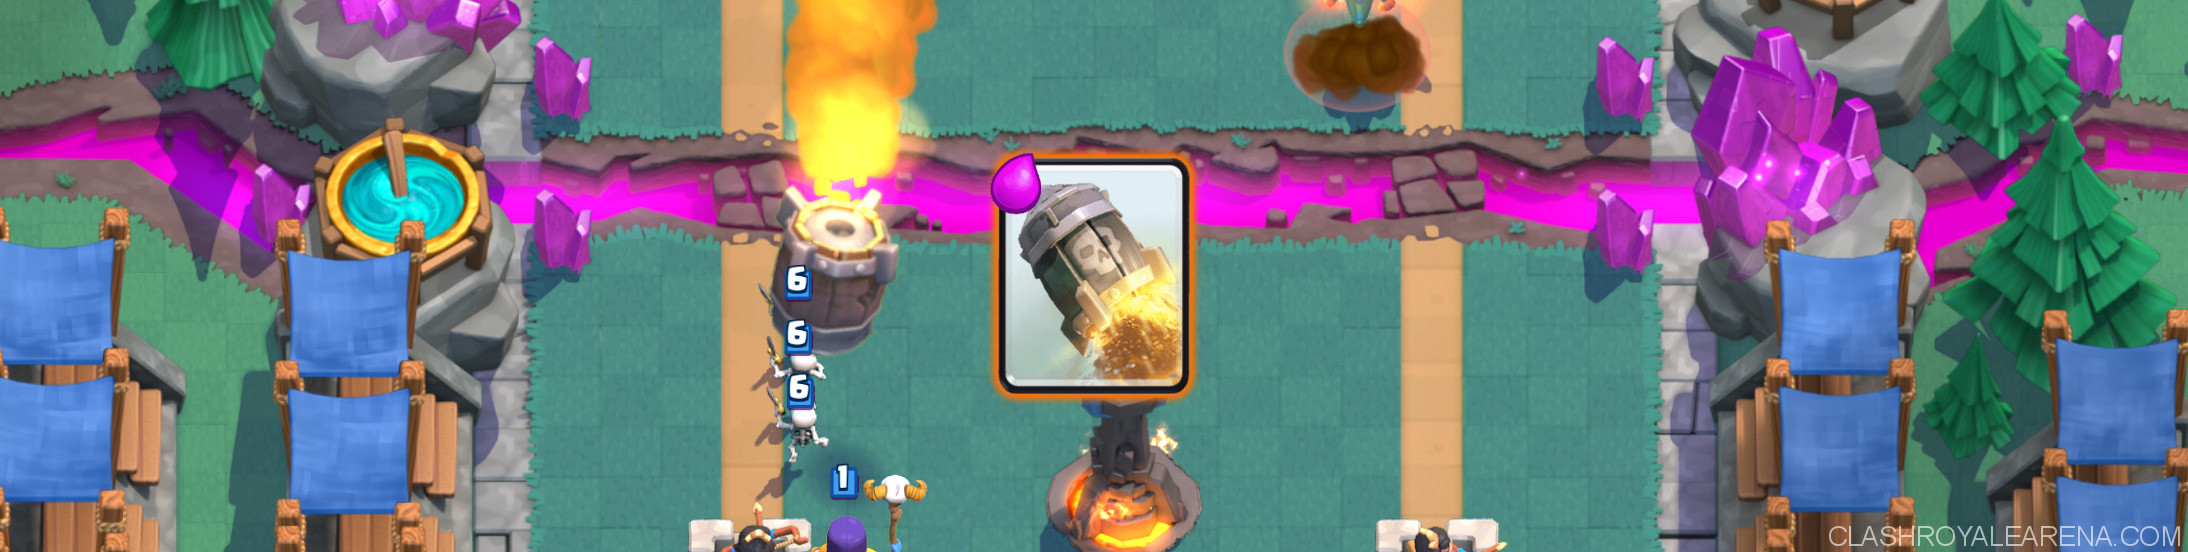 rocket clash royale